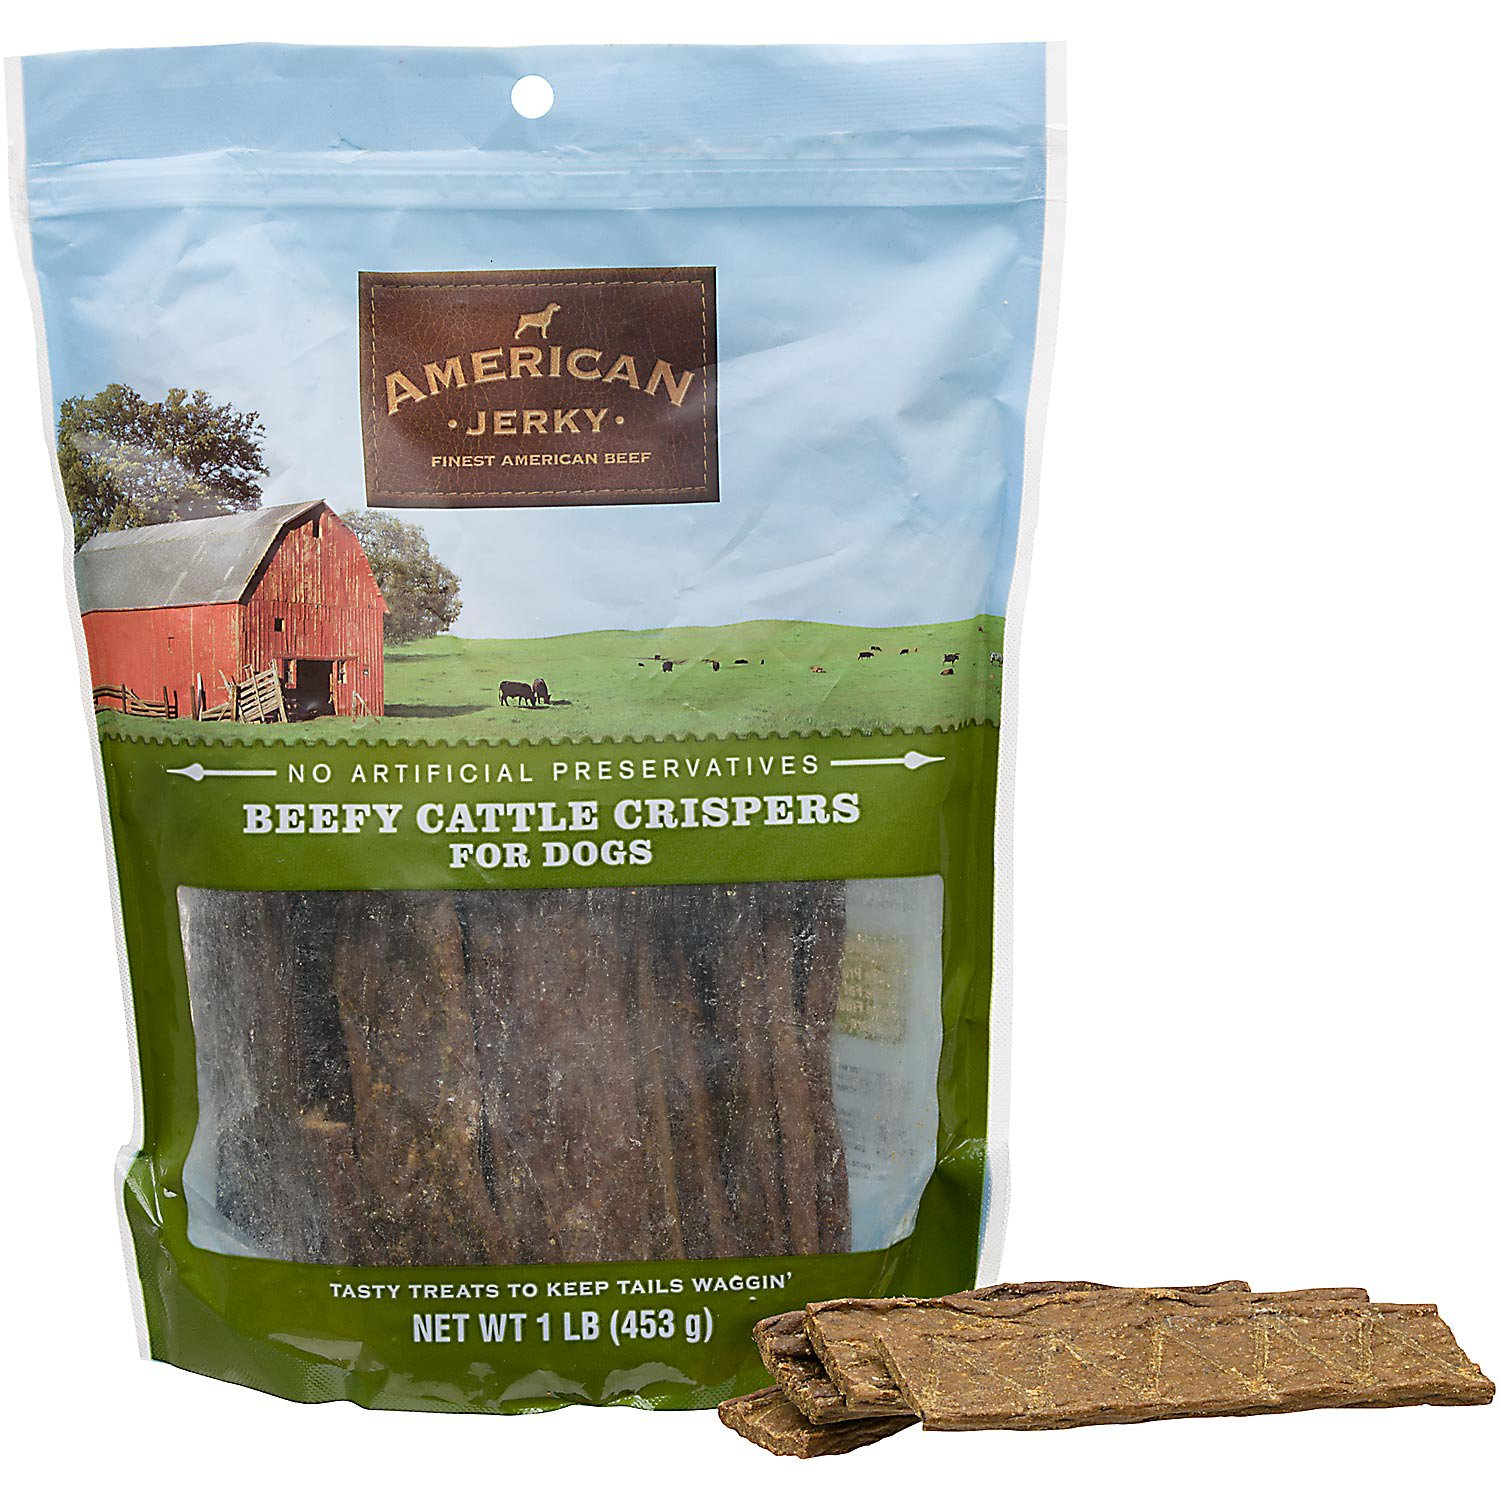 American Jerky Beefy Cattle Crispers Dog Treats